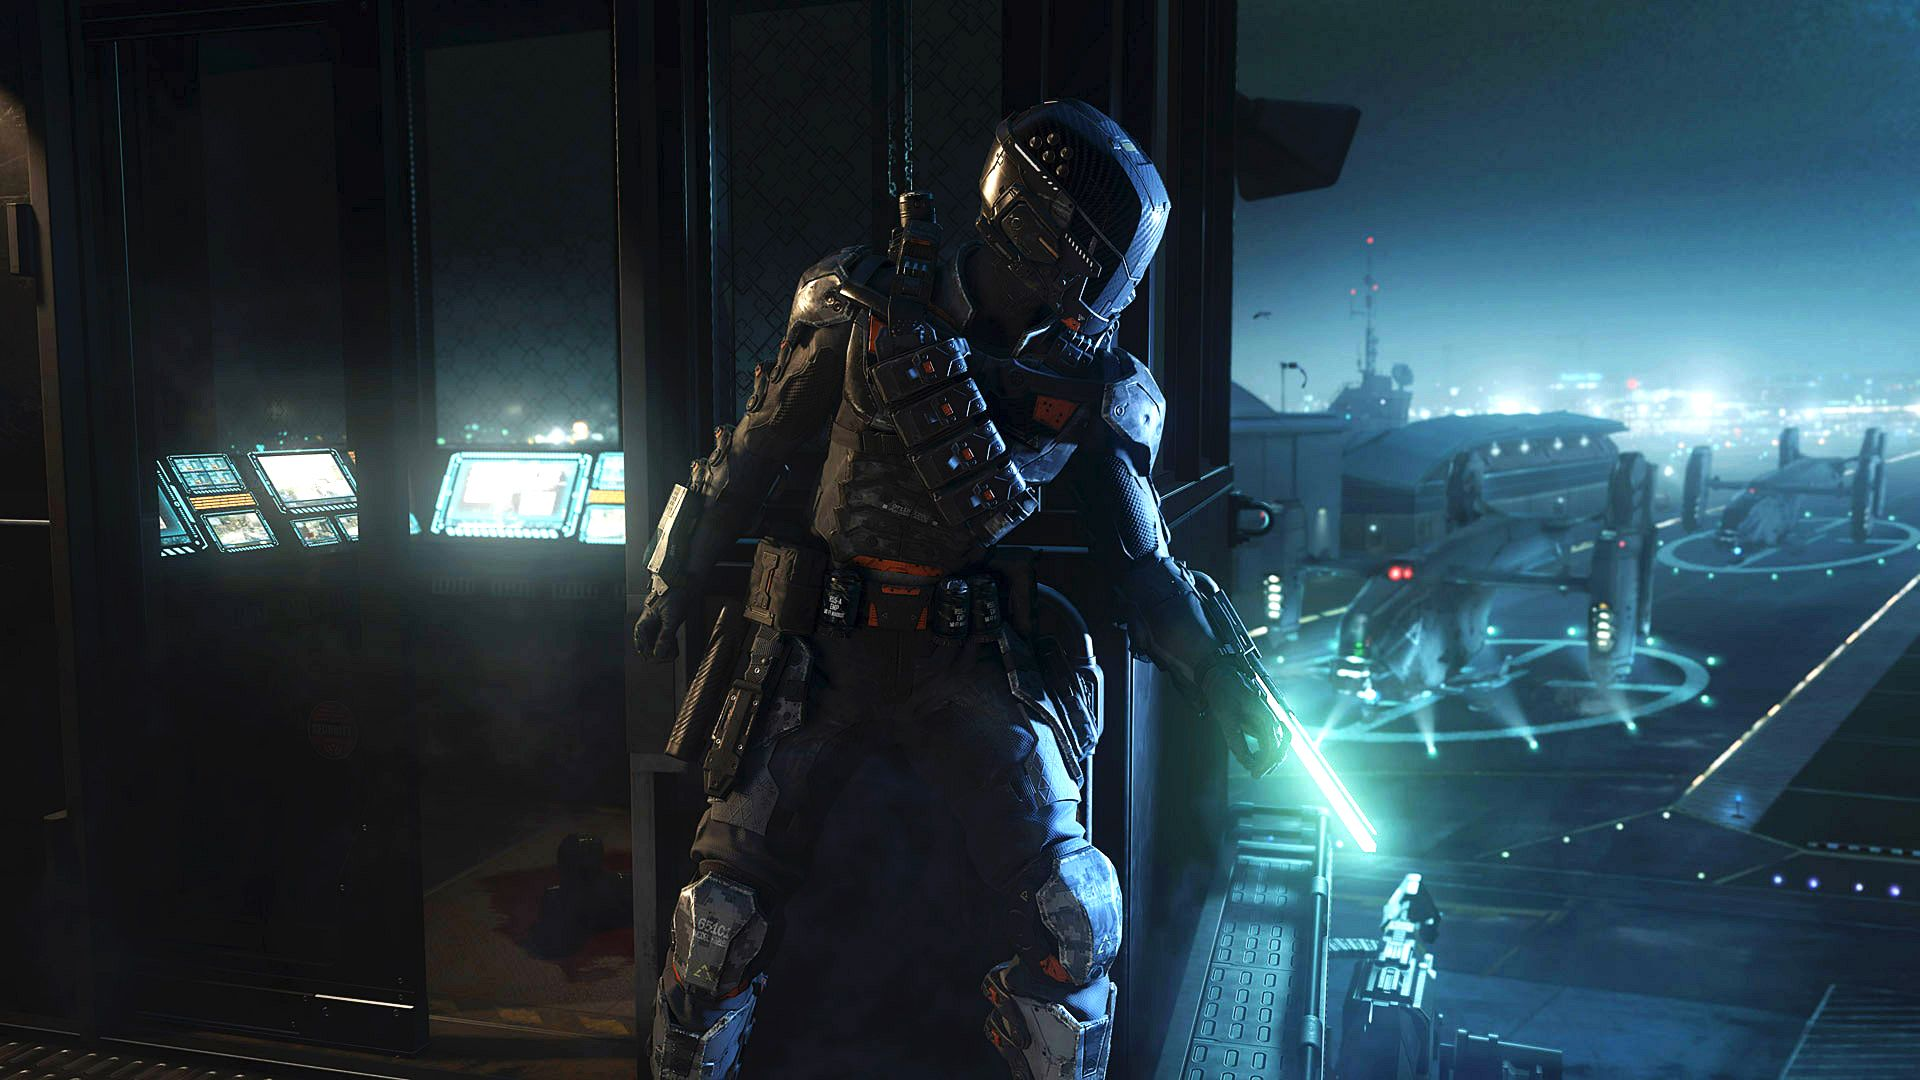 Cod Black Ops 3 Specialist Spectre Black Ops 3 Call Of Duty